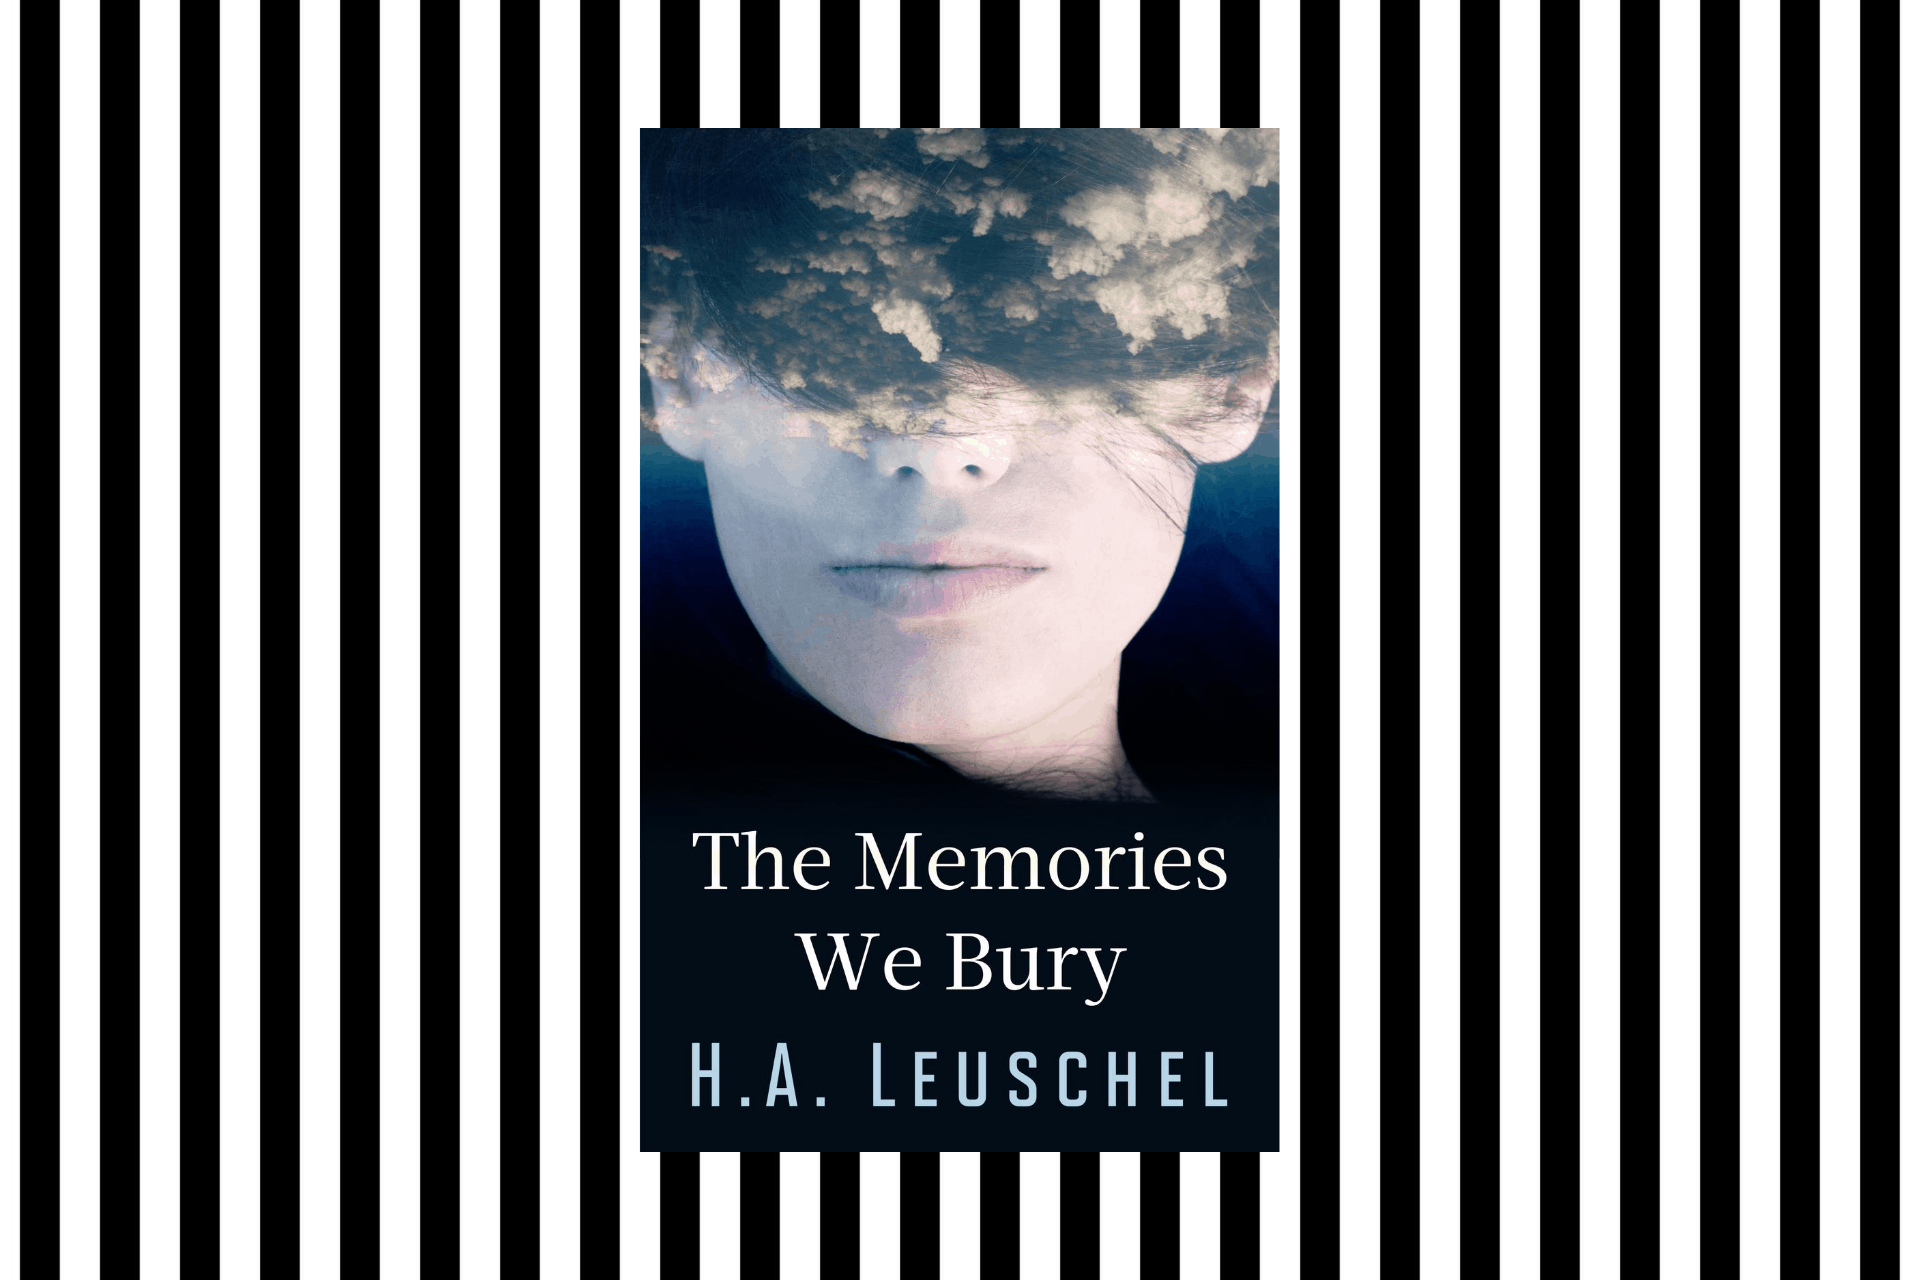 The cover of The Memories We Bury by H.A. Leuschel